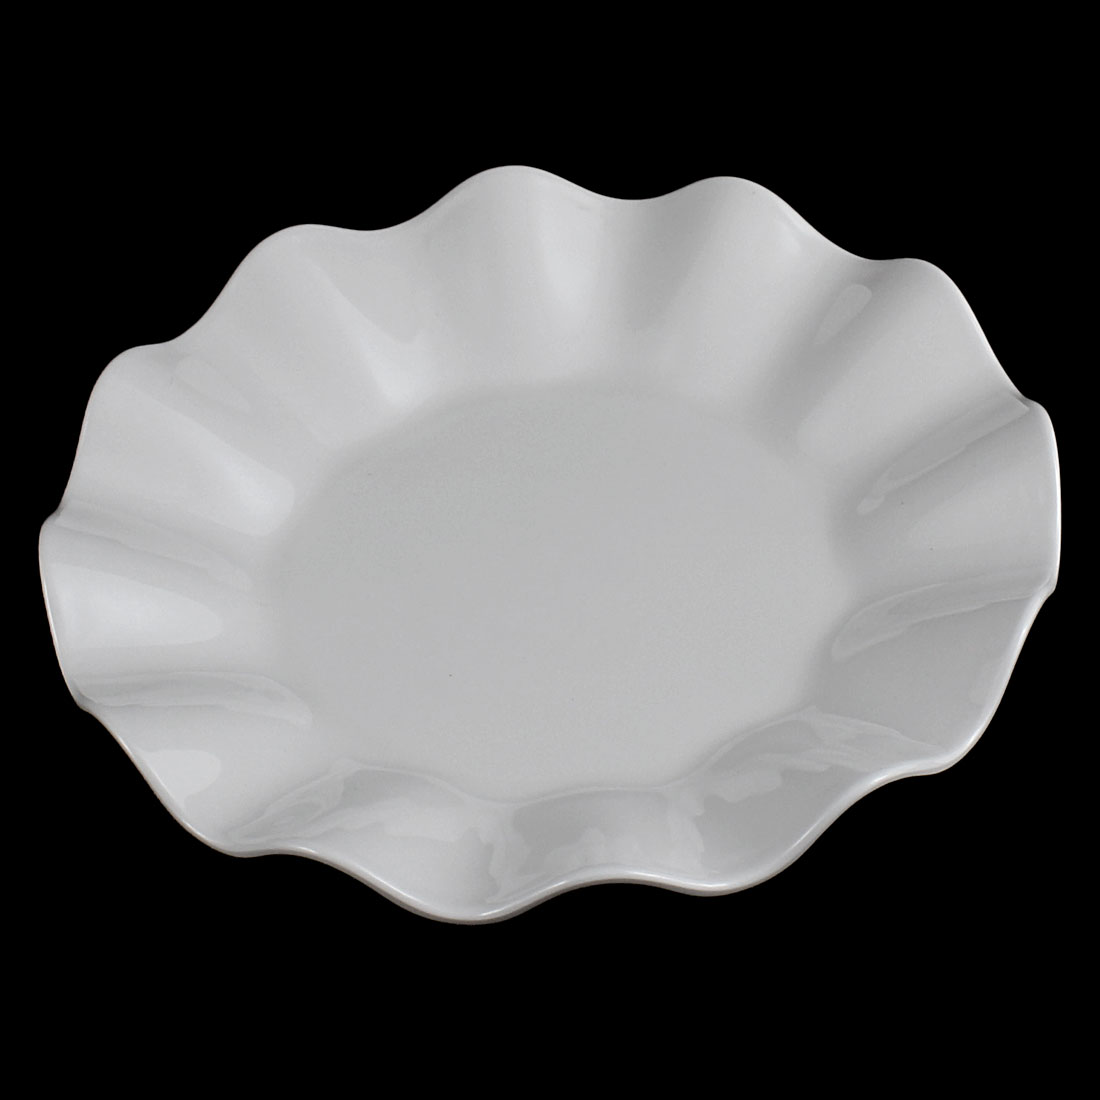 UXCELL Restaurant Wavy Pastry Appetizer Dessert Dish Plate White 16Cm Dia dish-in Dishes